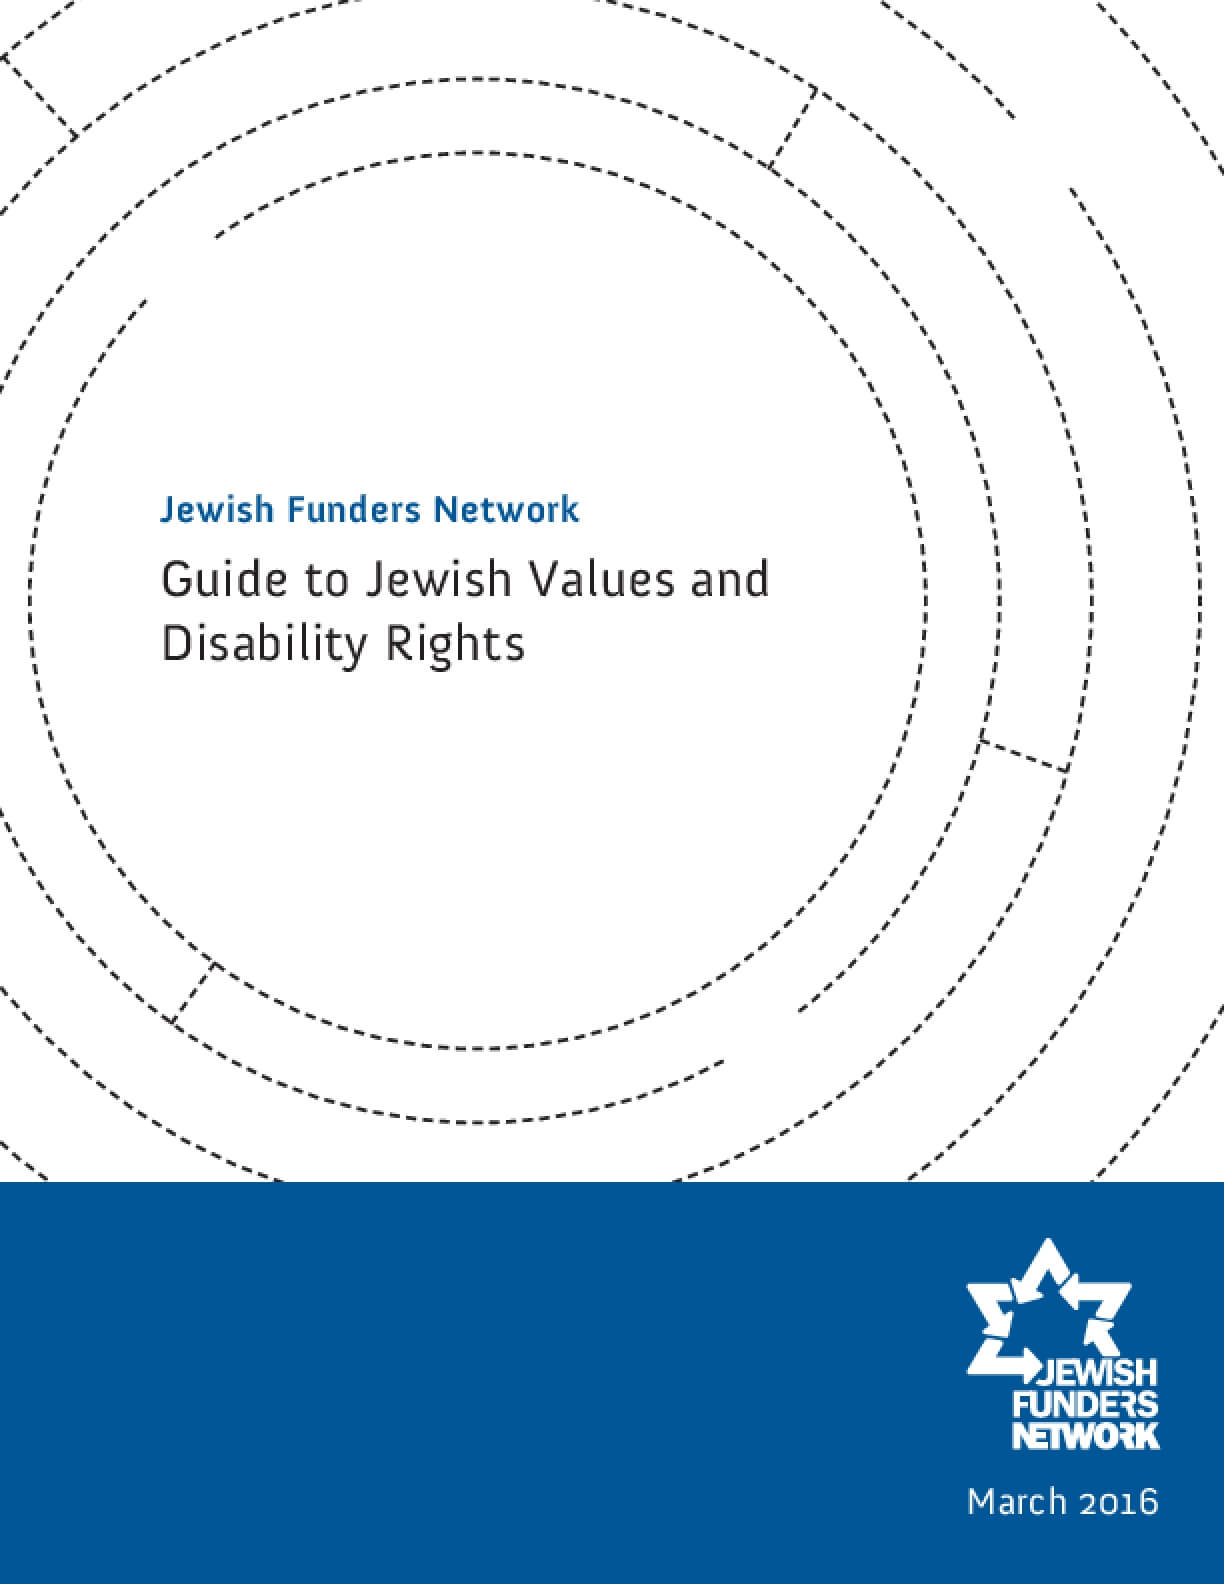 Guide to Jewish Values and Disability Rights